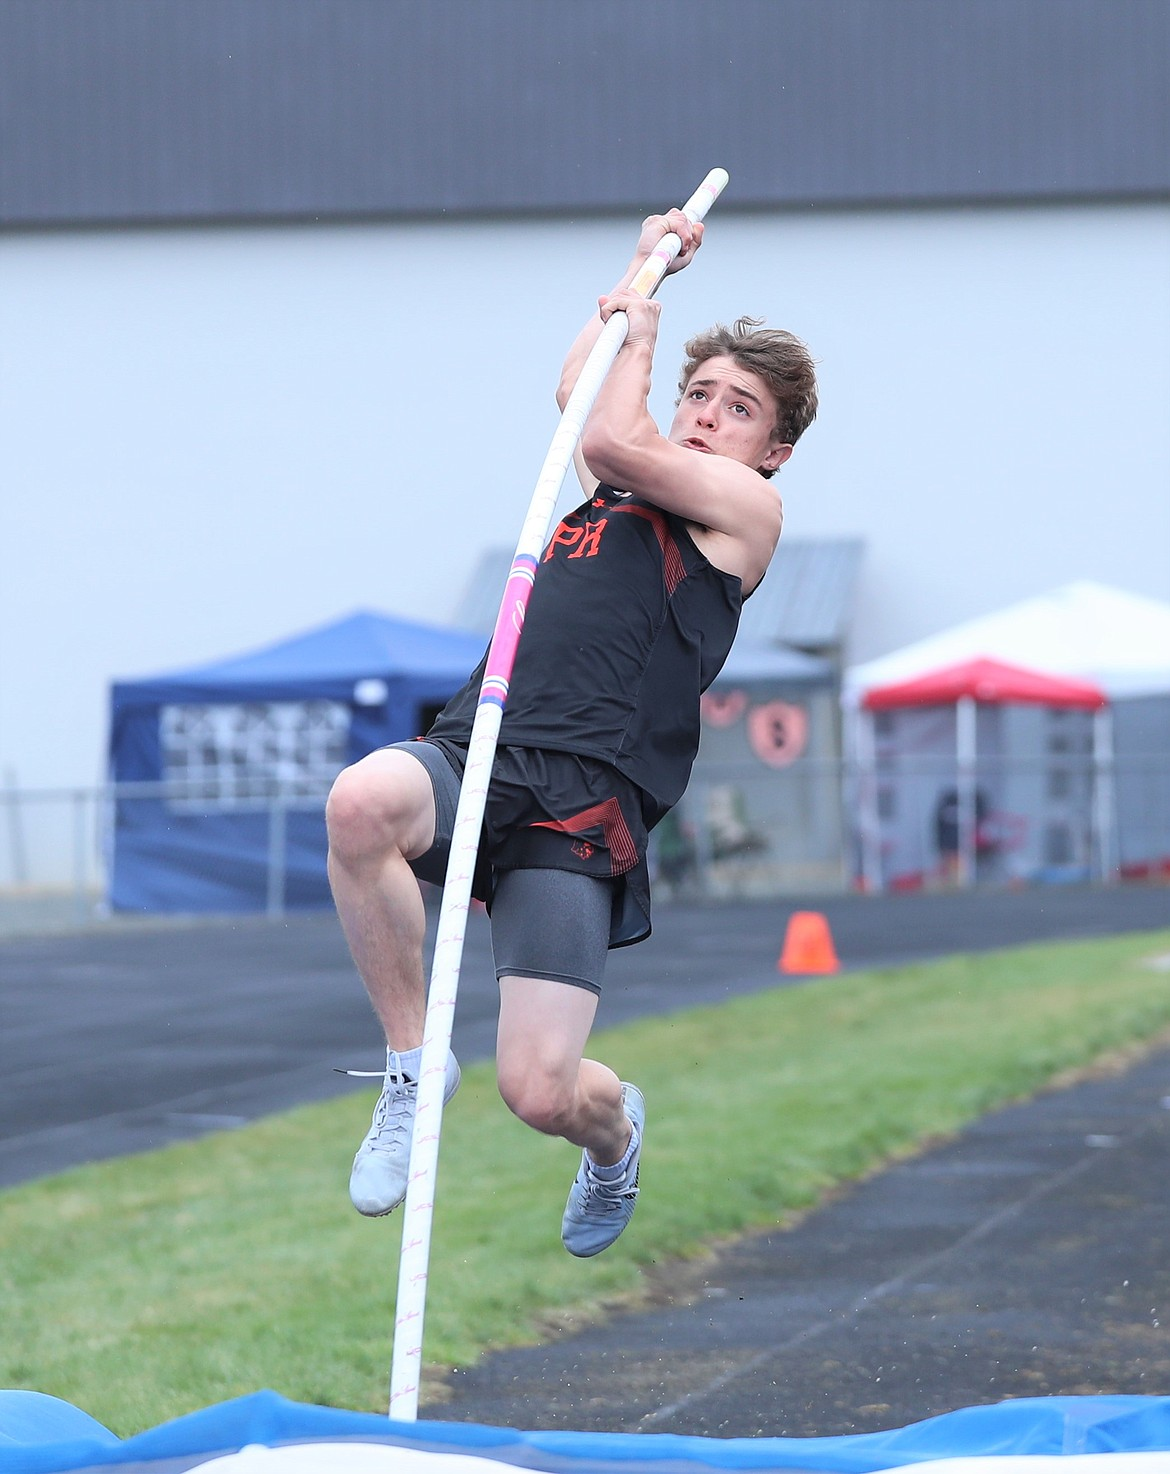 Erik Deem takes off in the pole vault on Saturday.